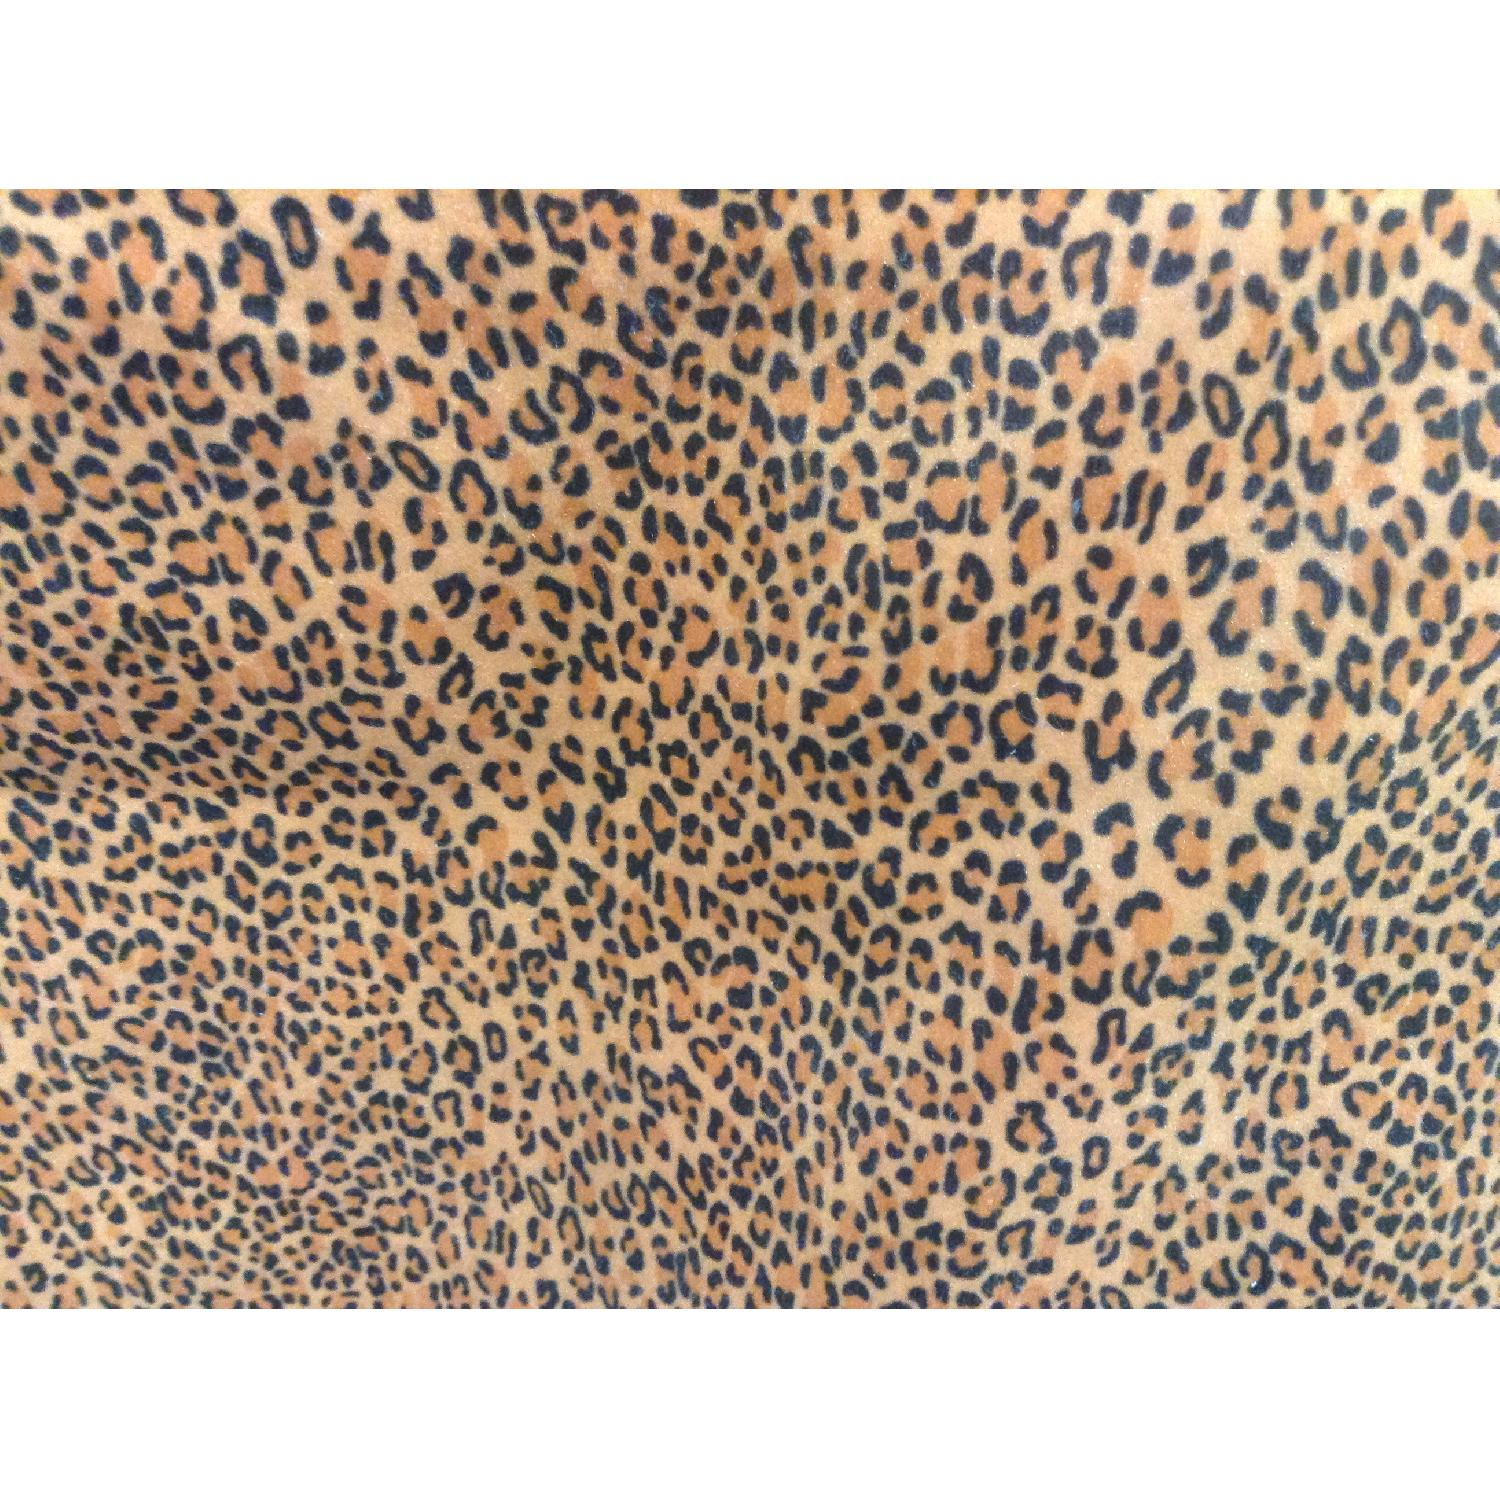 Wide Gold & Brown Leopard/Animal Print Microfiber Upholstery Fabric - image-0